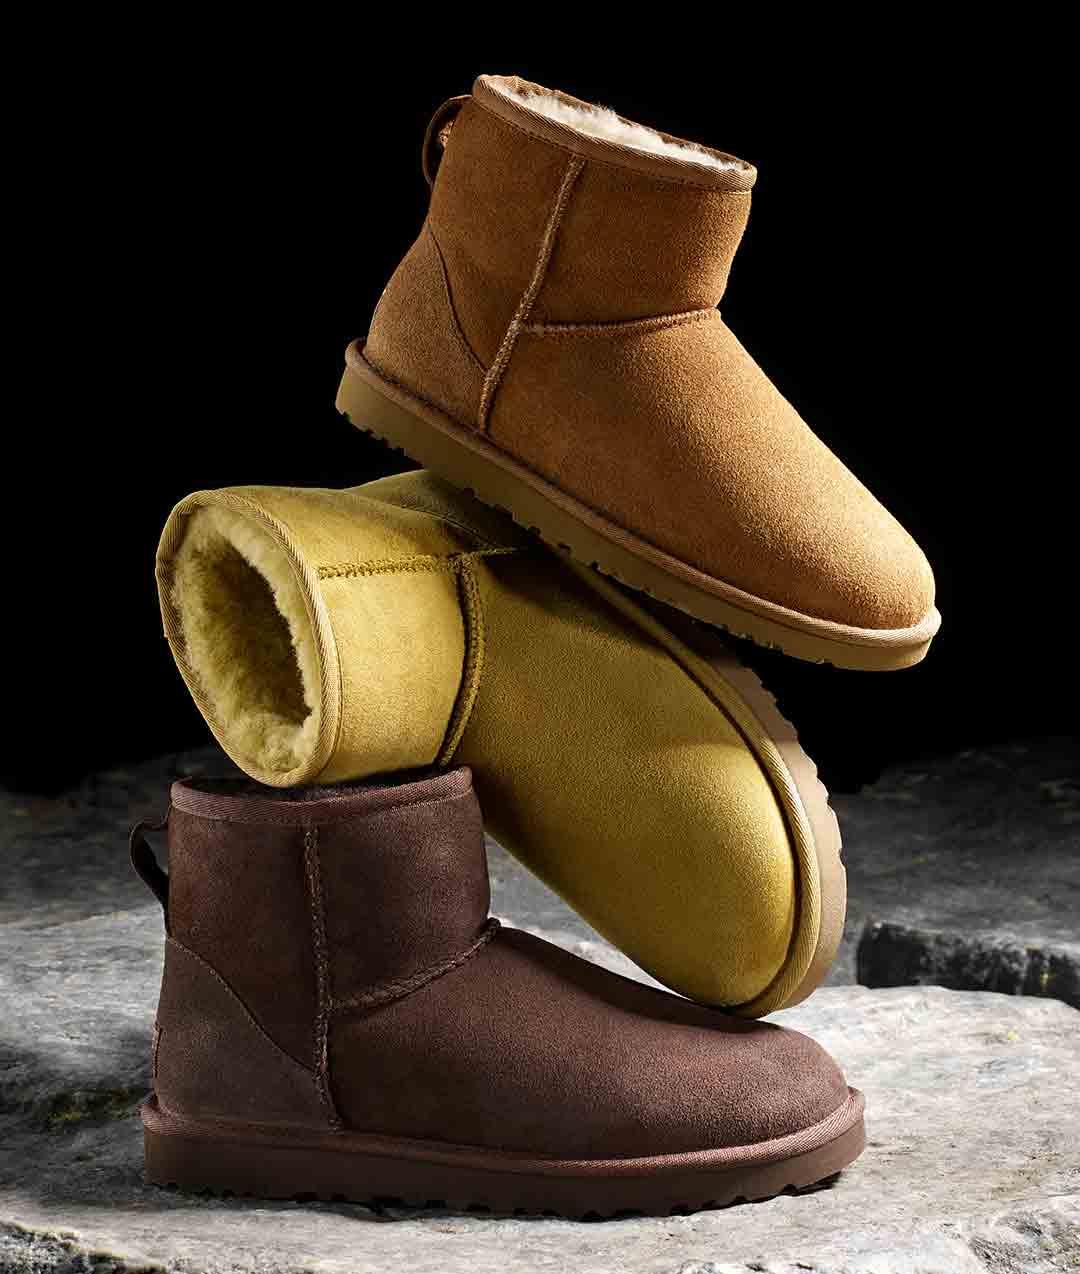 Up to 56% Off Ugg Womens' Boots @ Shoebuy.com